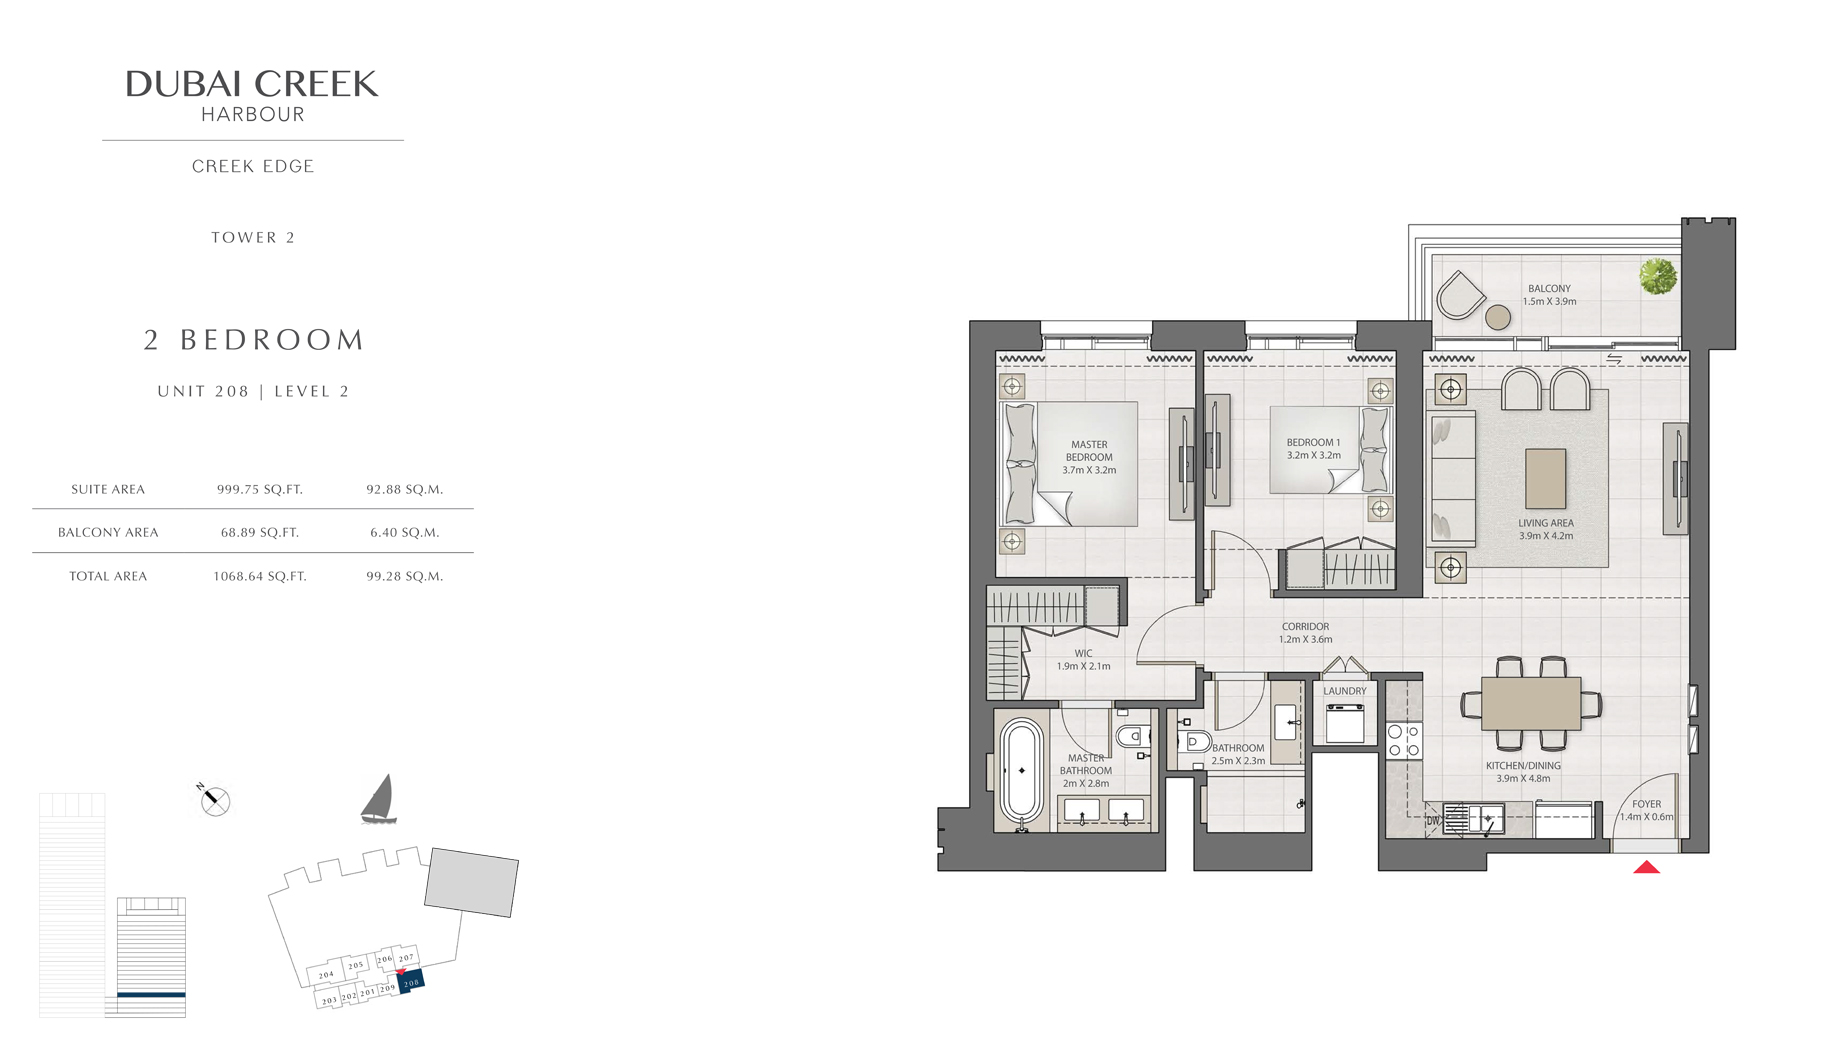 2 Bedroom Tower 2 Unit 208 Level 2 Size 1068 sq.ft